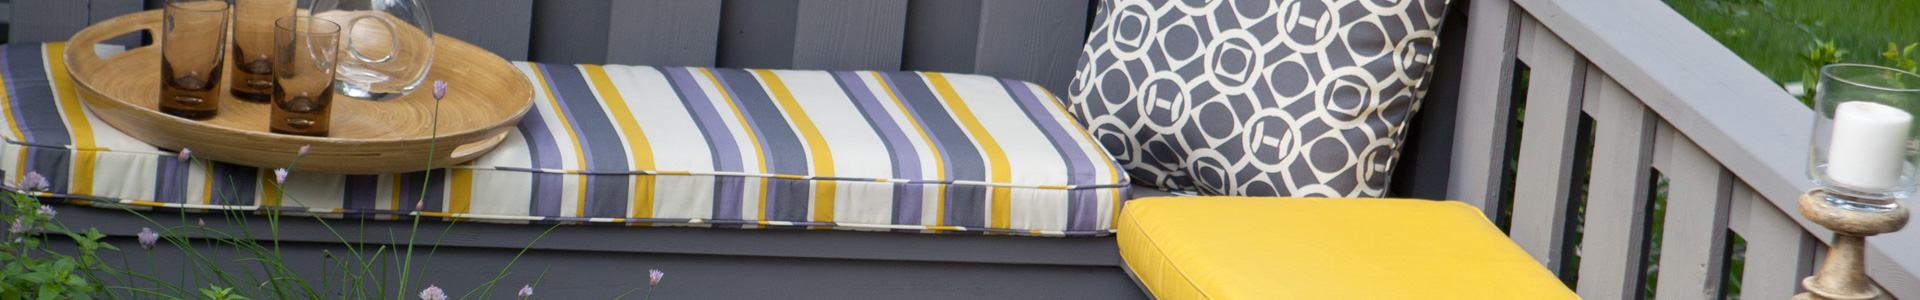 Deluxe Bench Cushion